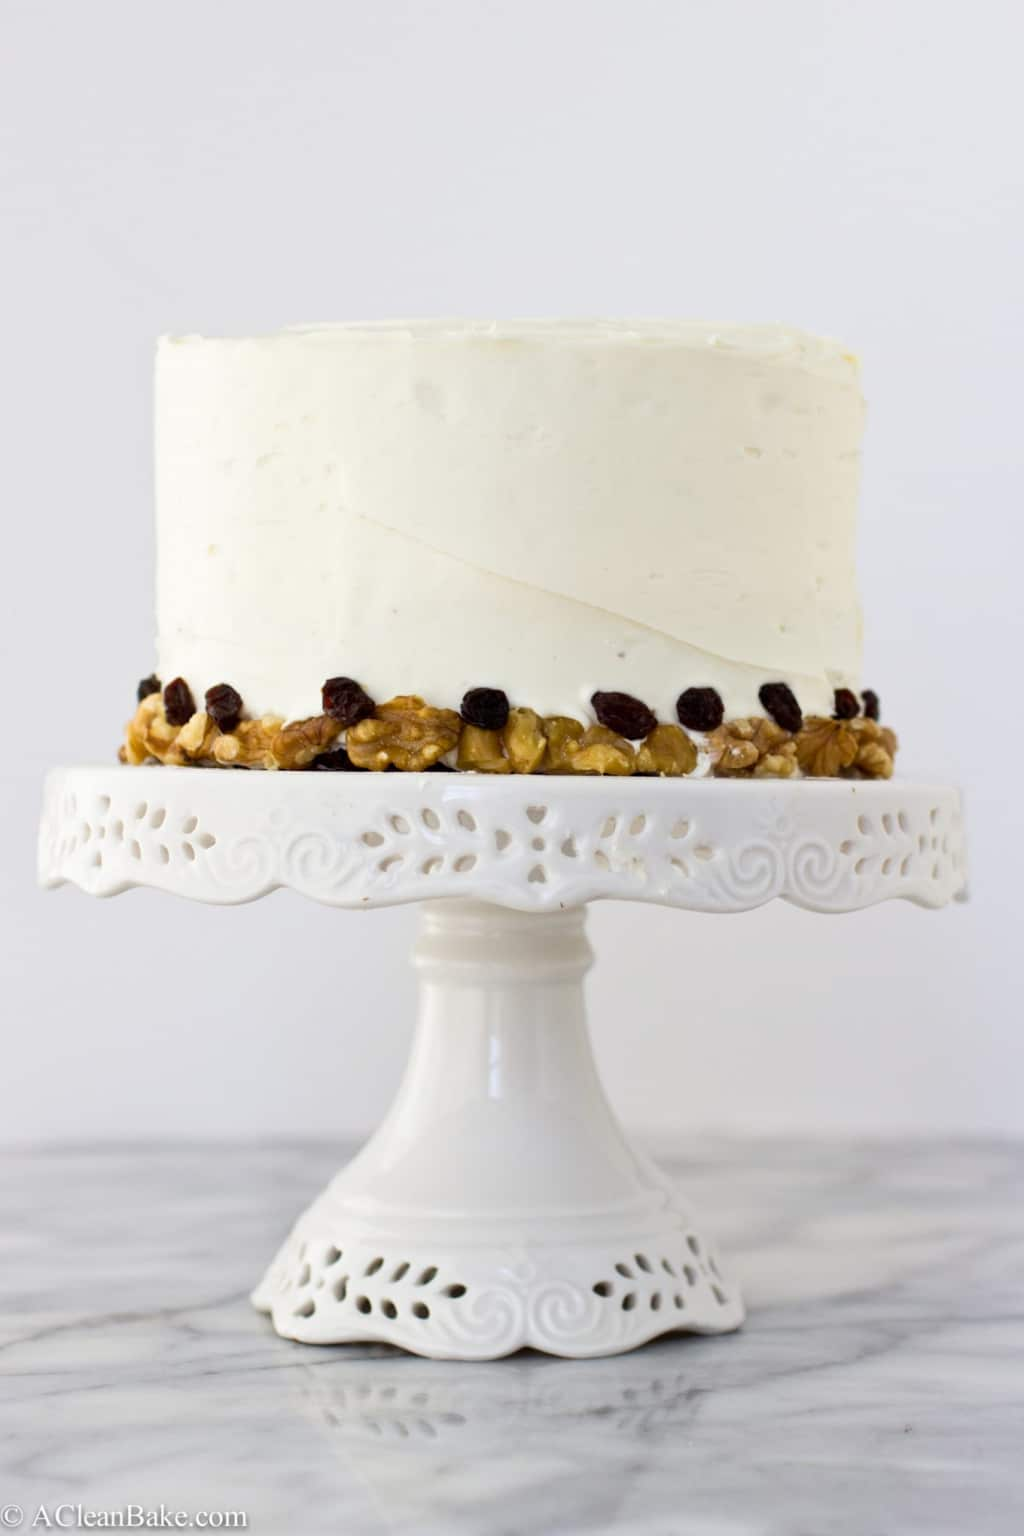 Healthy Carrot Cake